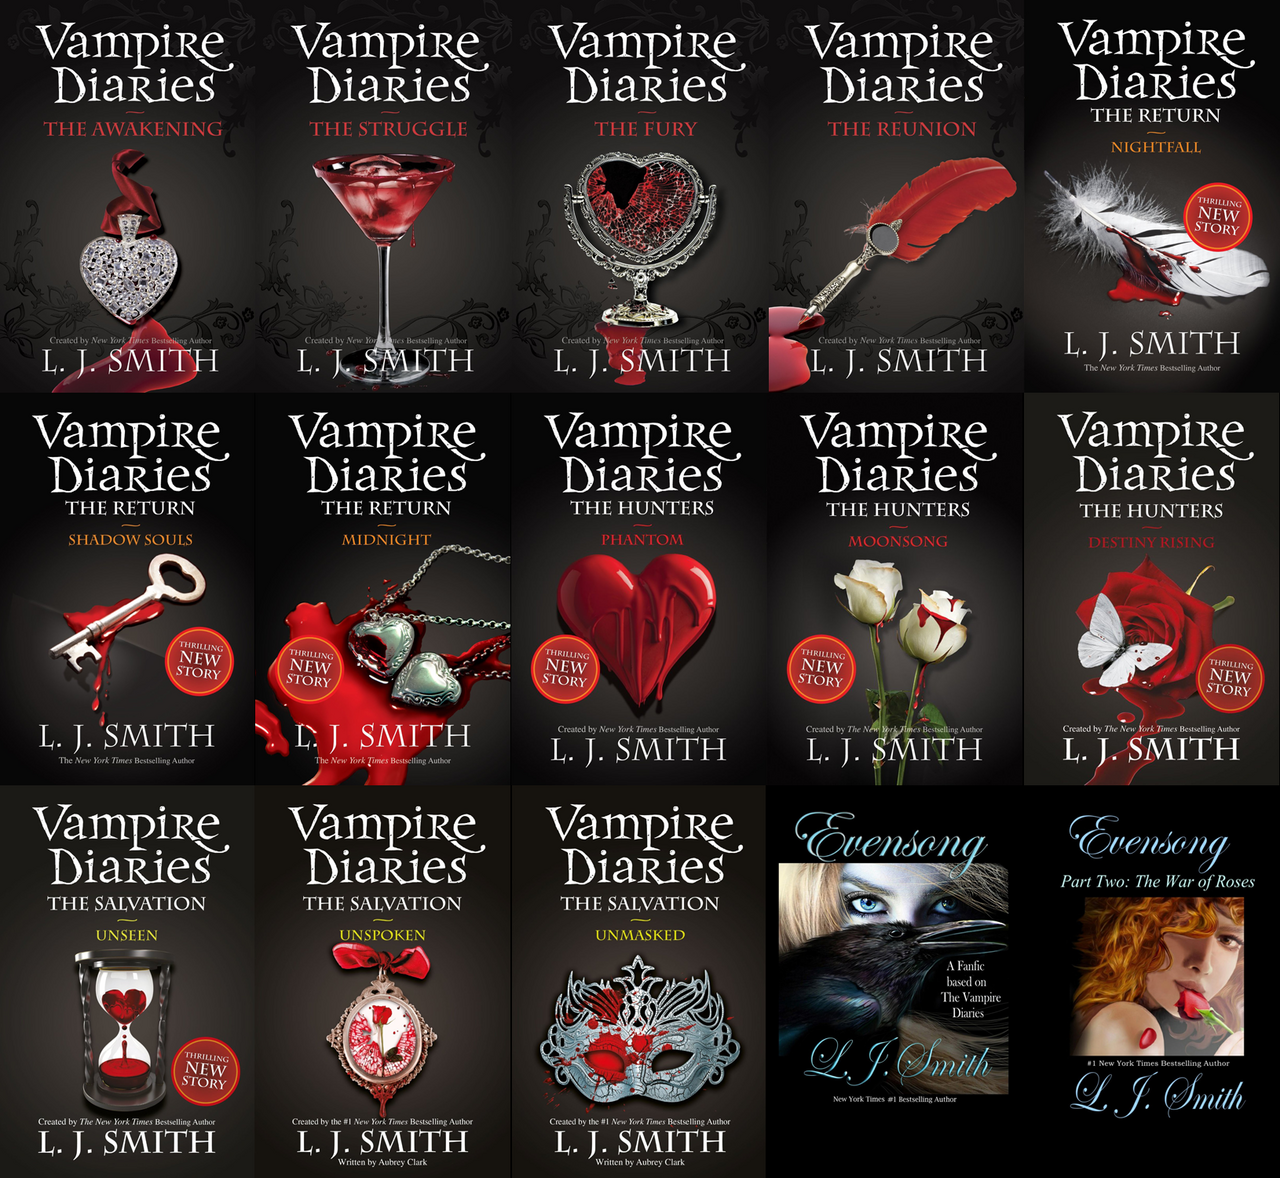 Image - The Vampire Diaries Wiki-background Png